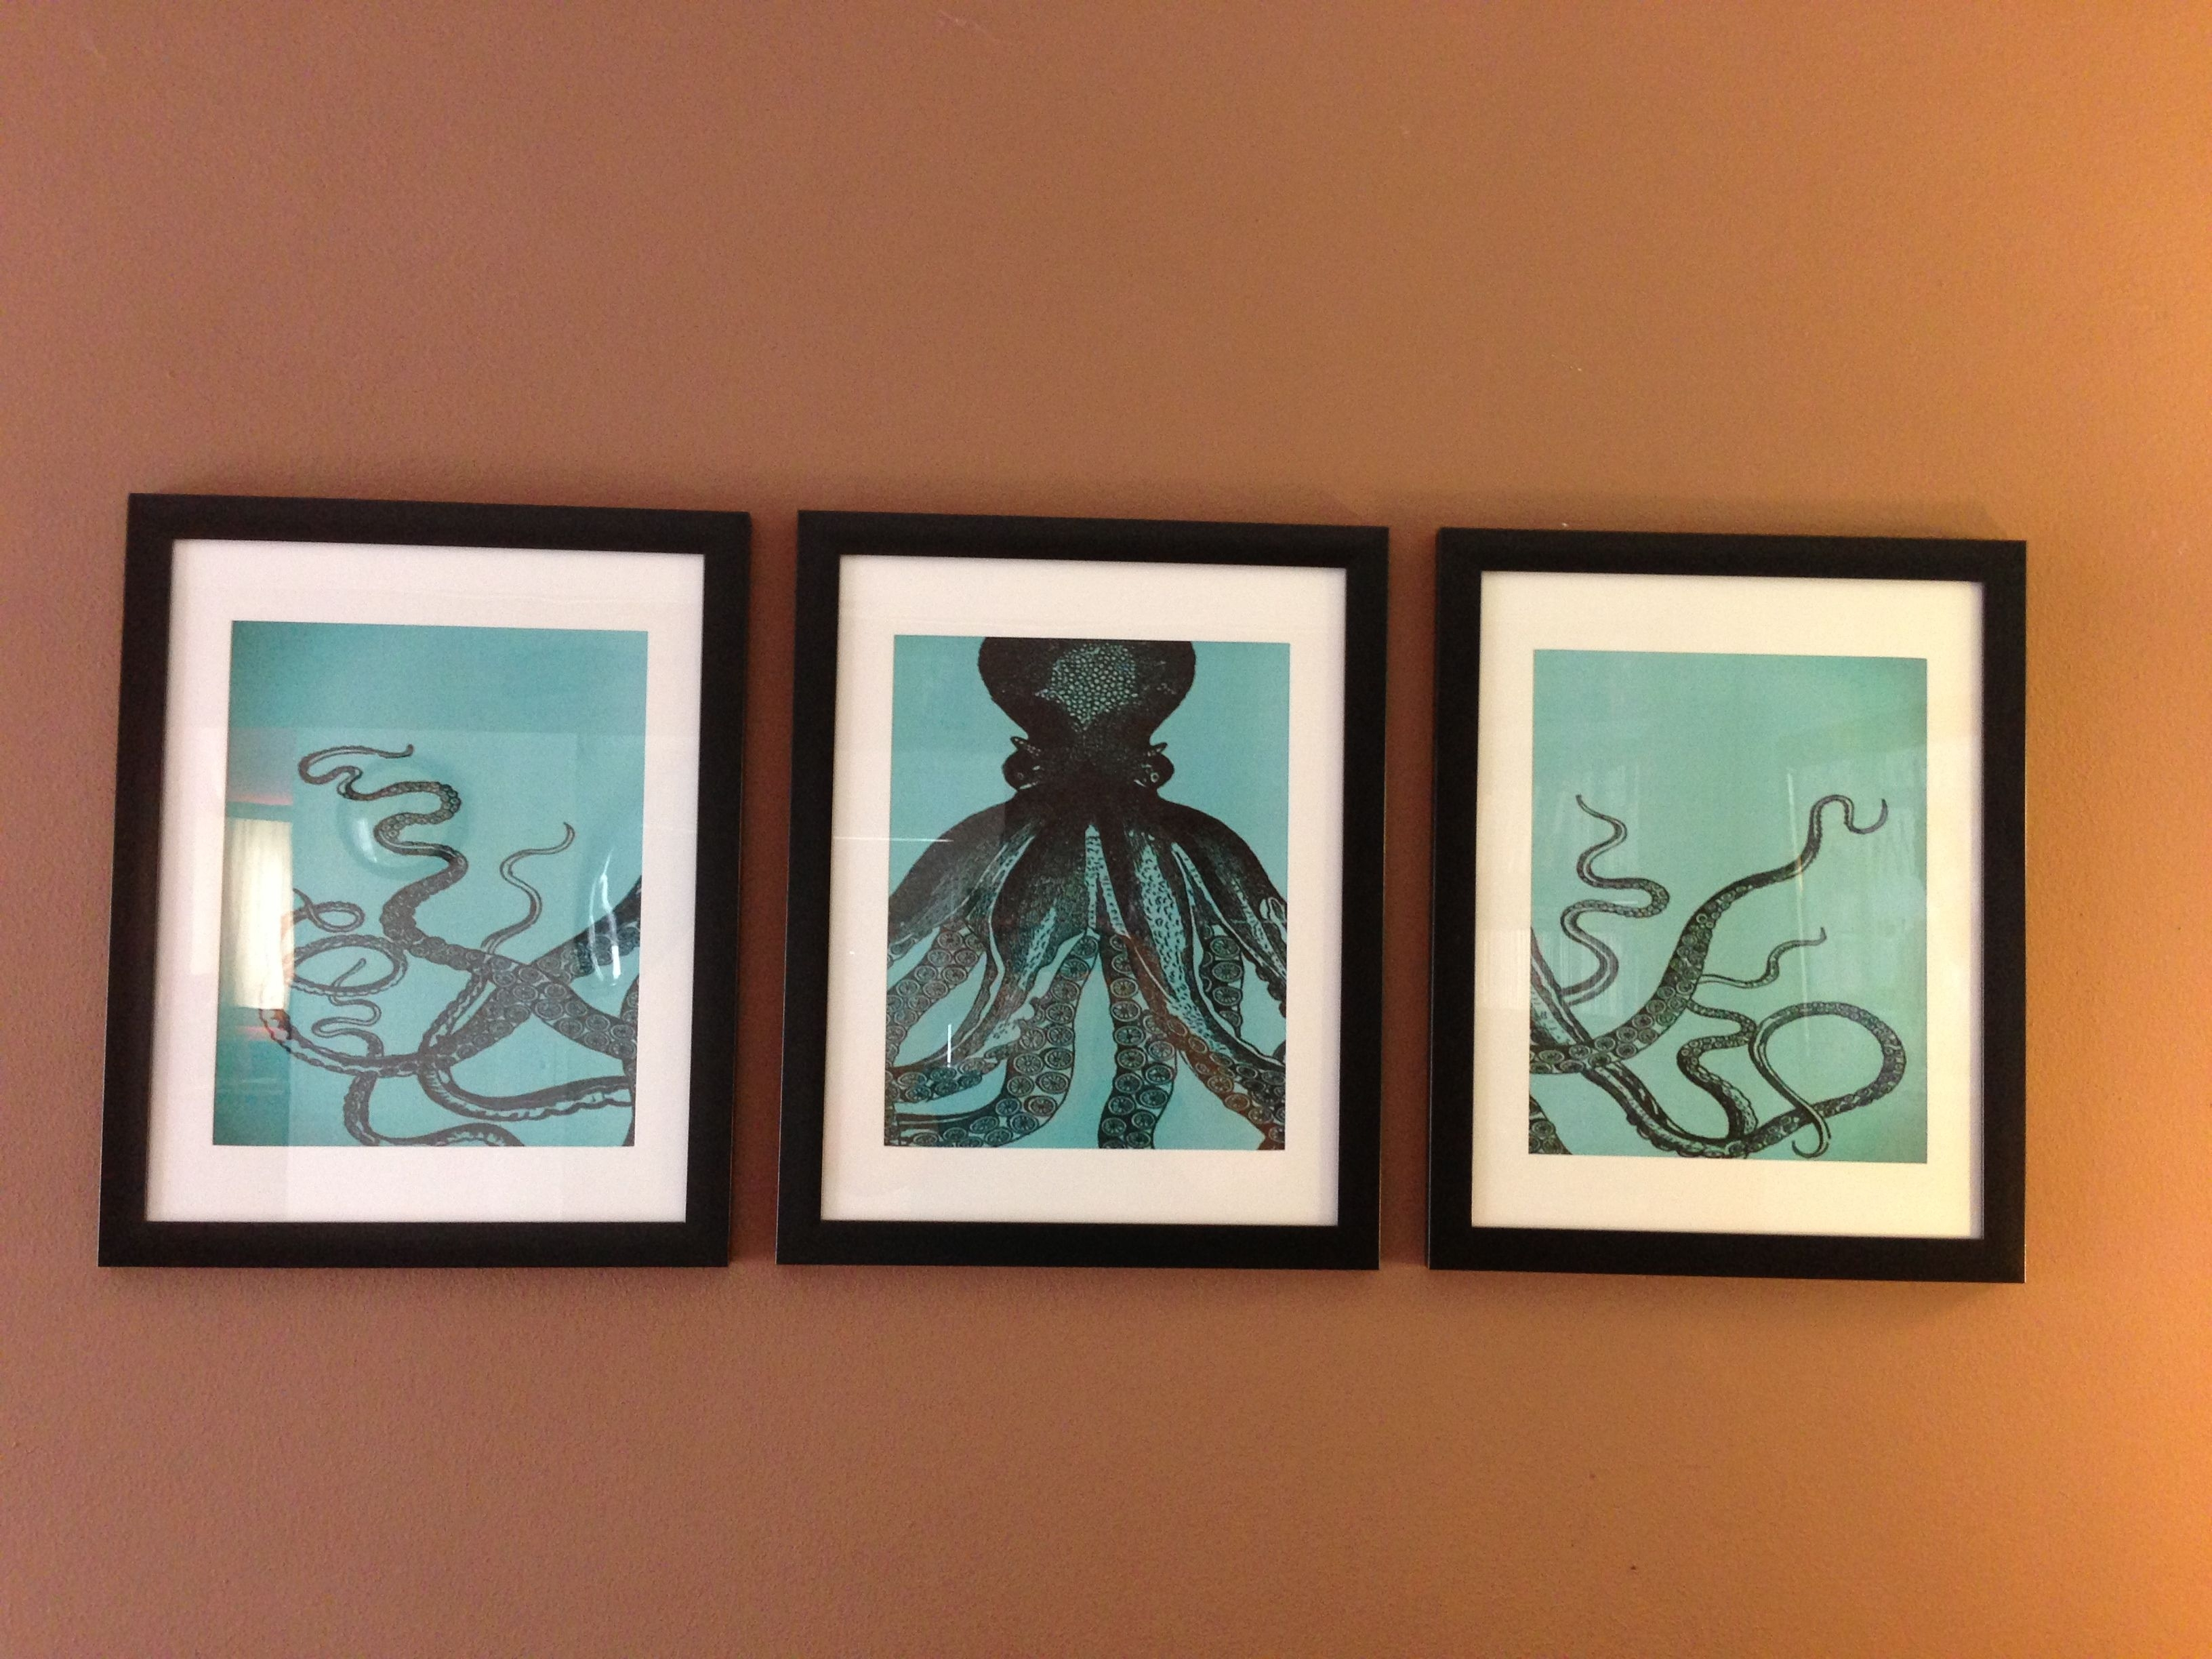 Diy Octopus Wall Art I Made. Cost Under $30----For Over The Bed in Octopus Wall Art (Image 6 of 20)